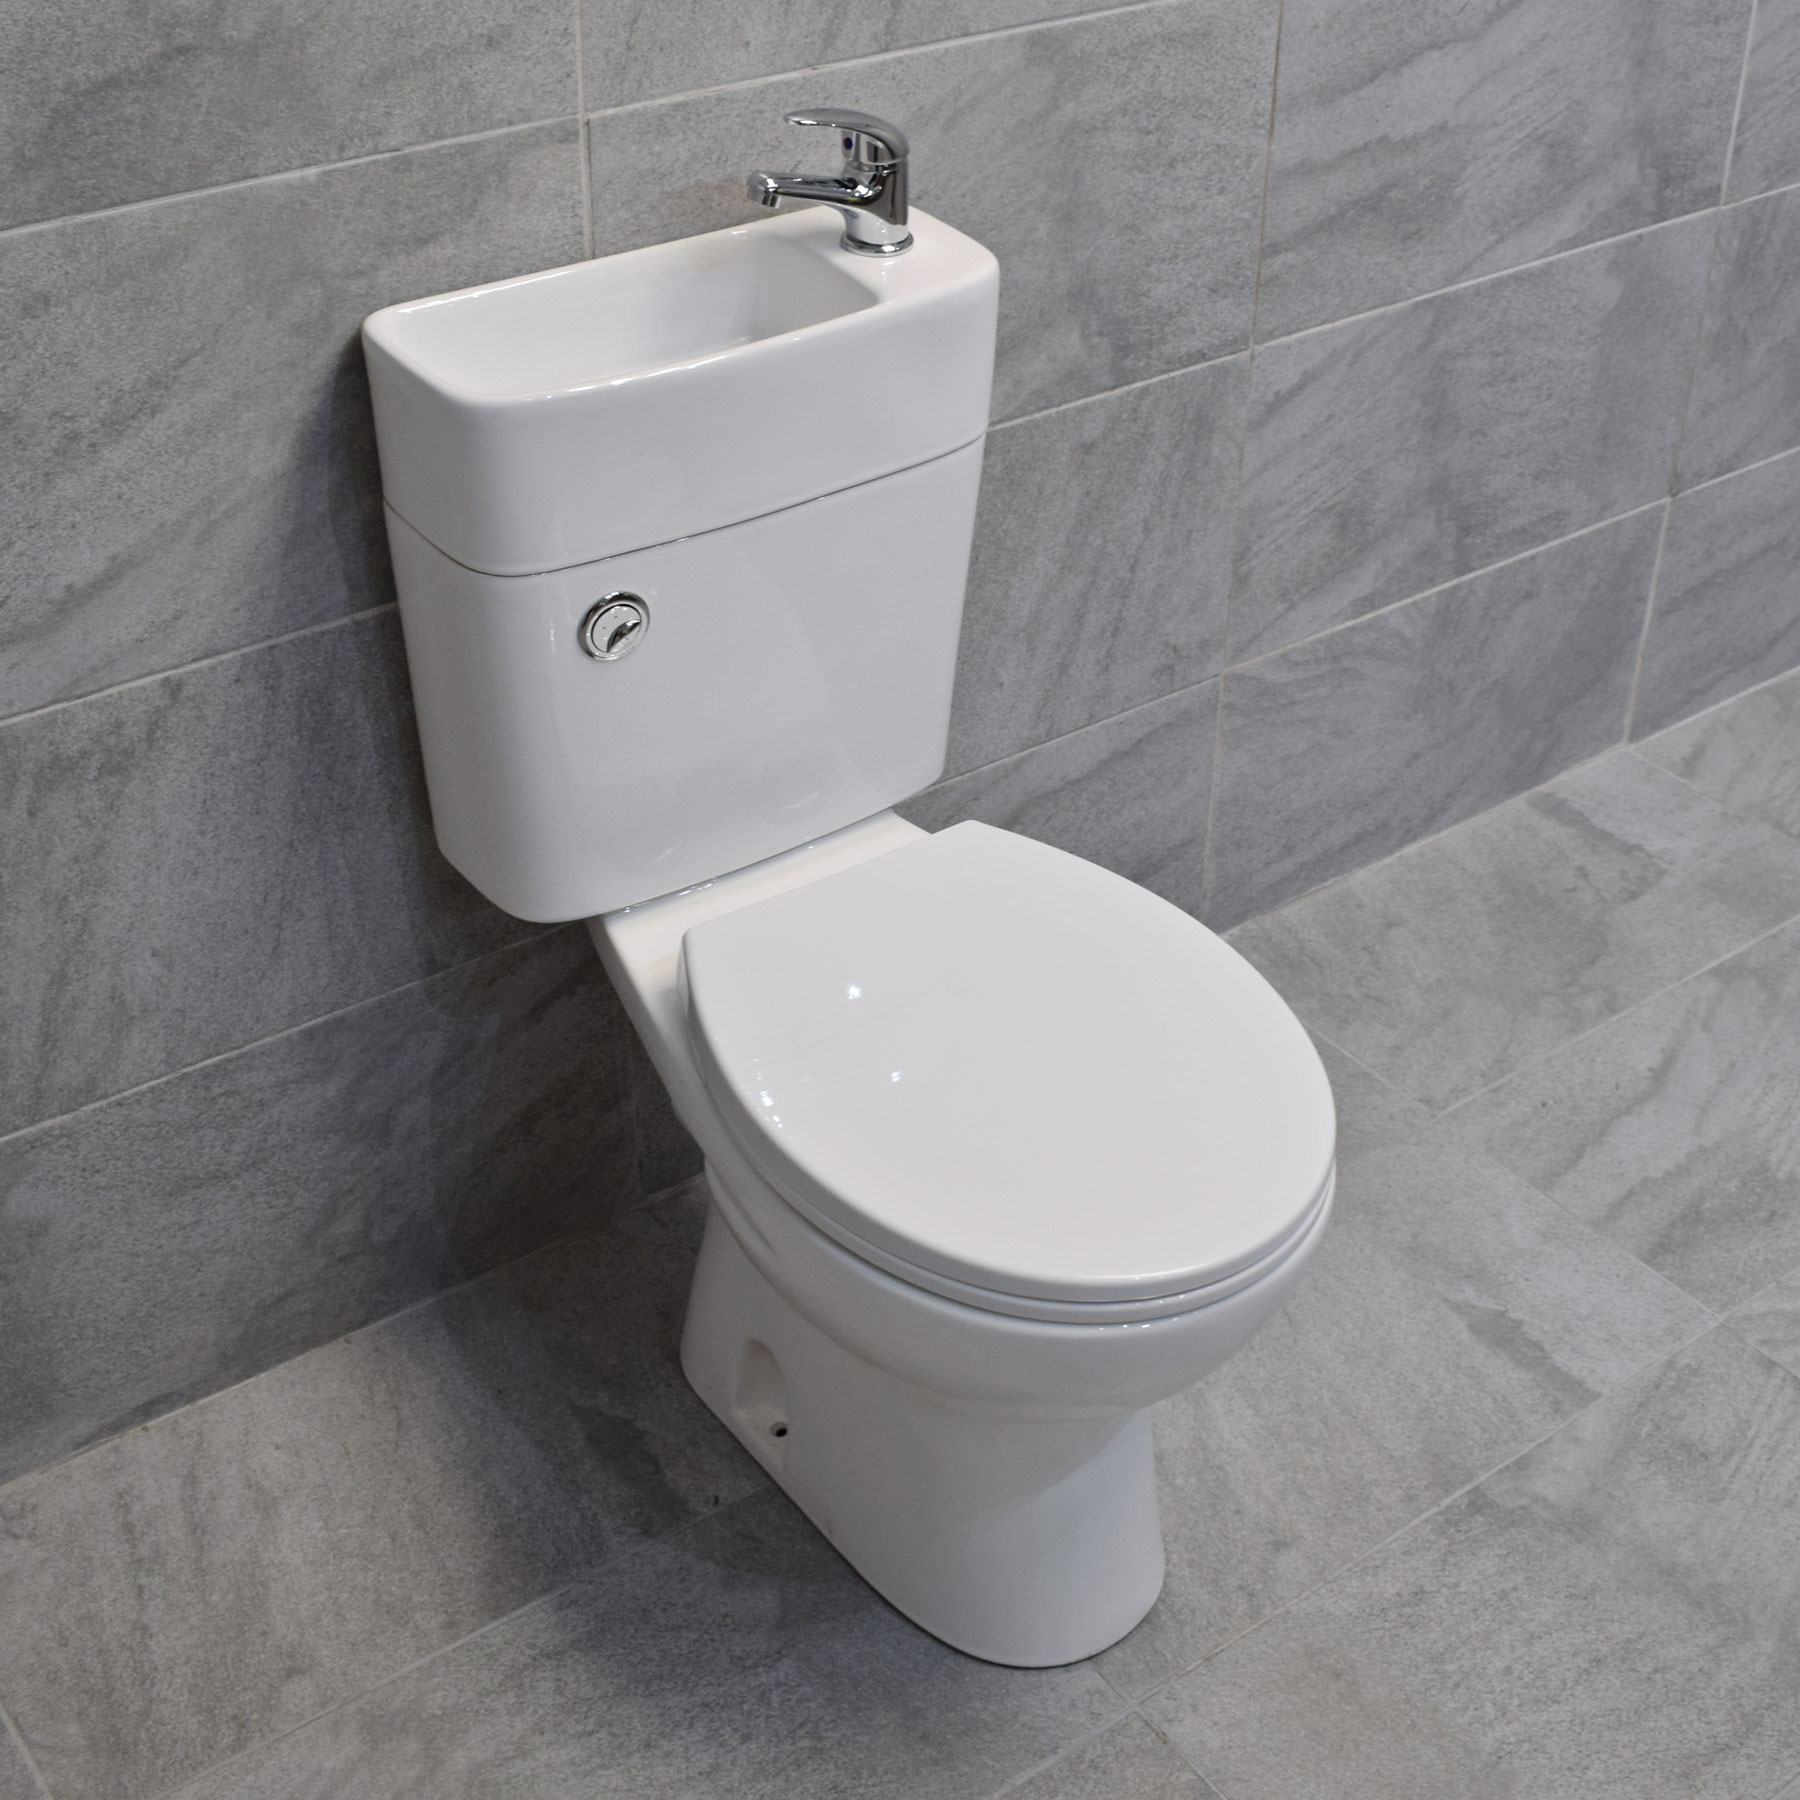 Duo Toilet Basin Combo Combined Toilet With Sink Tap Space Saving Cloakroom Unit Ebay